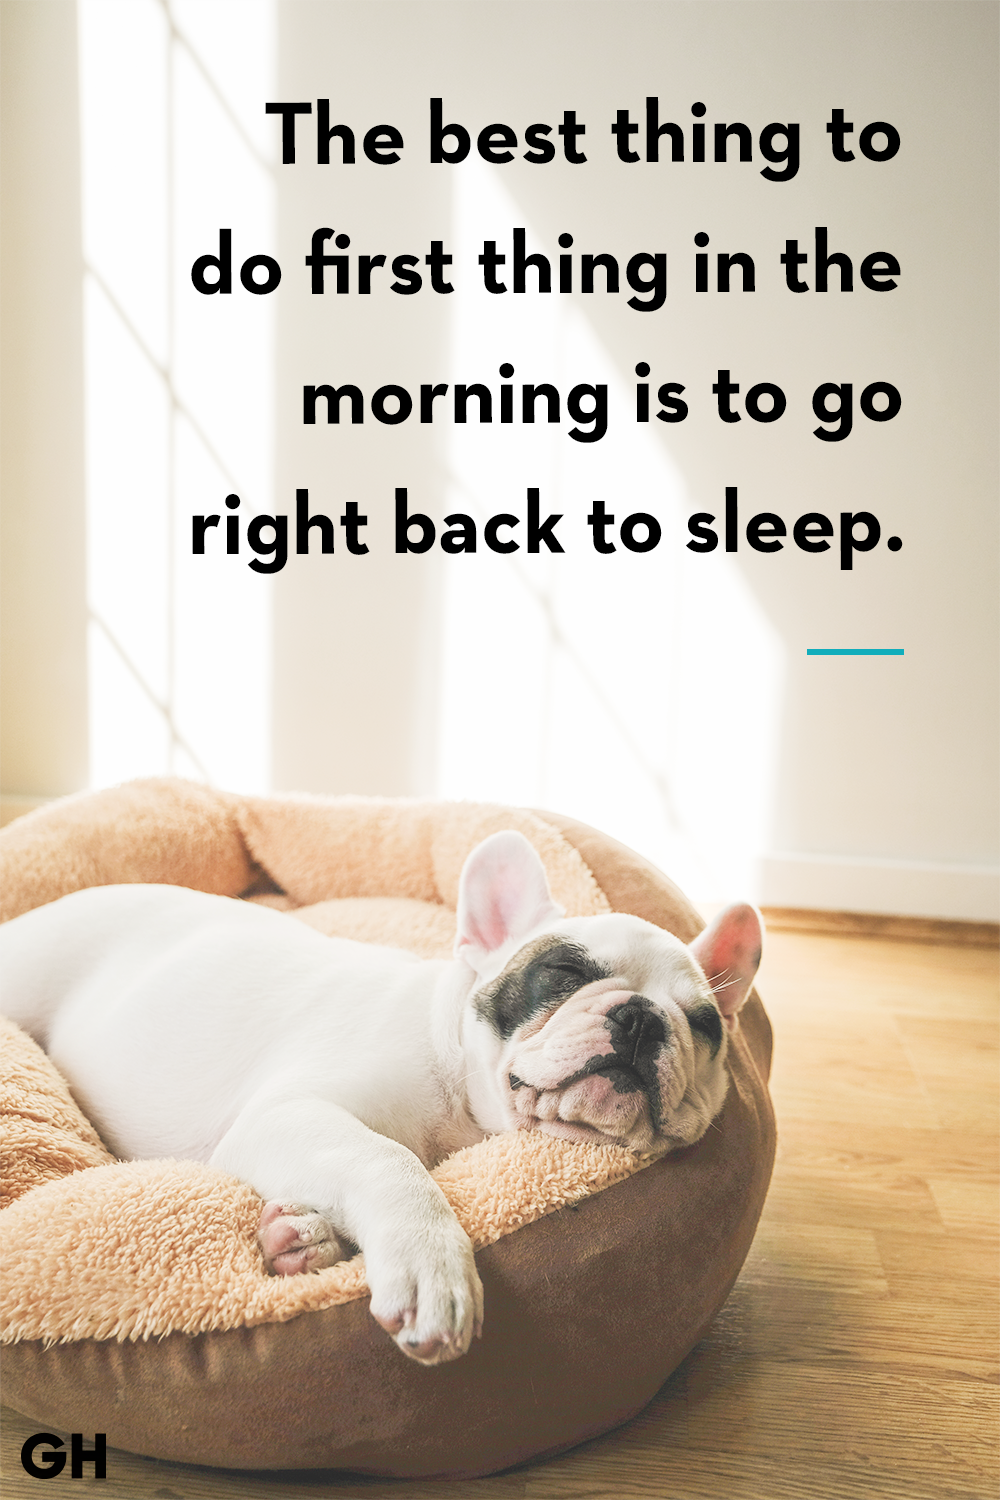 best thing to dosleep quote